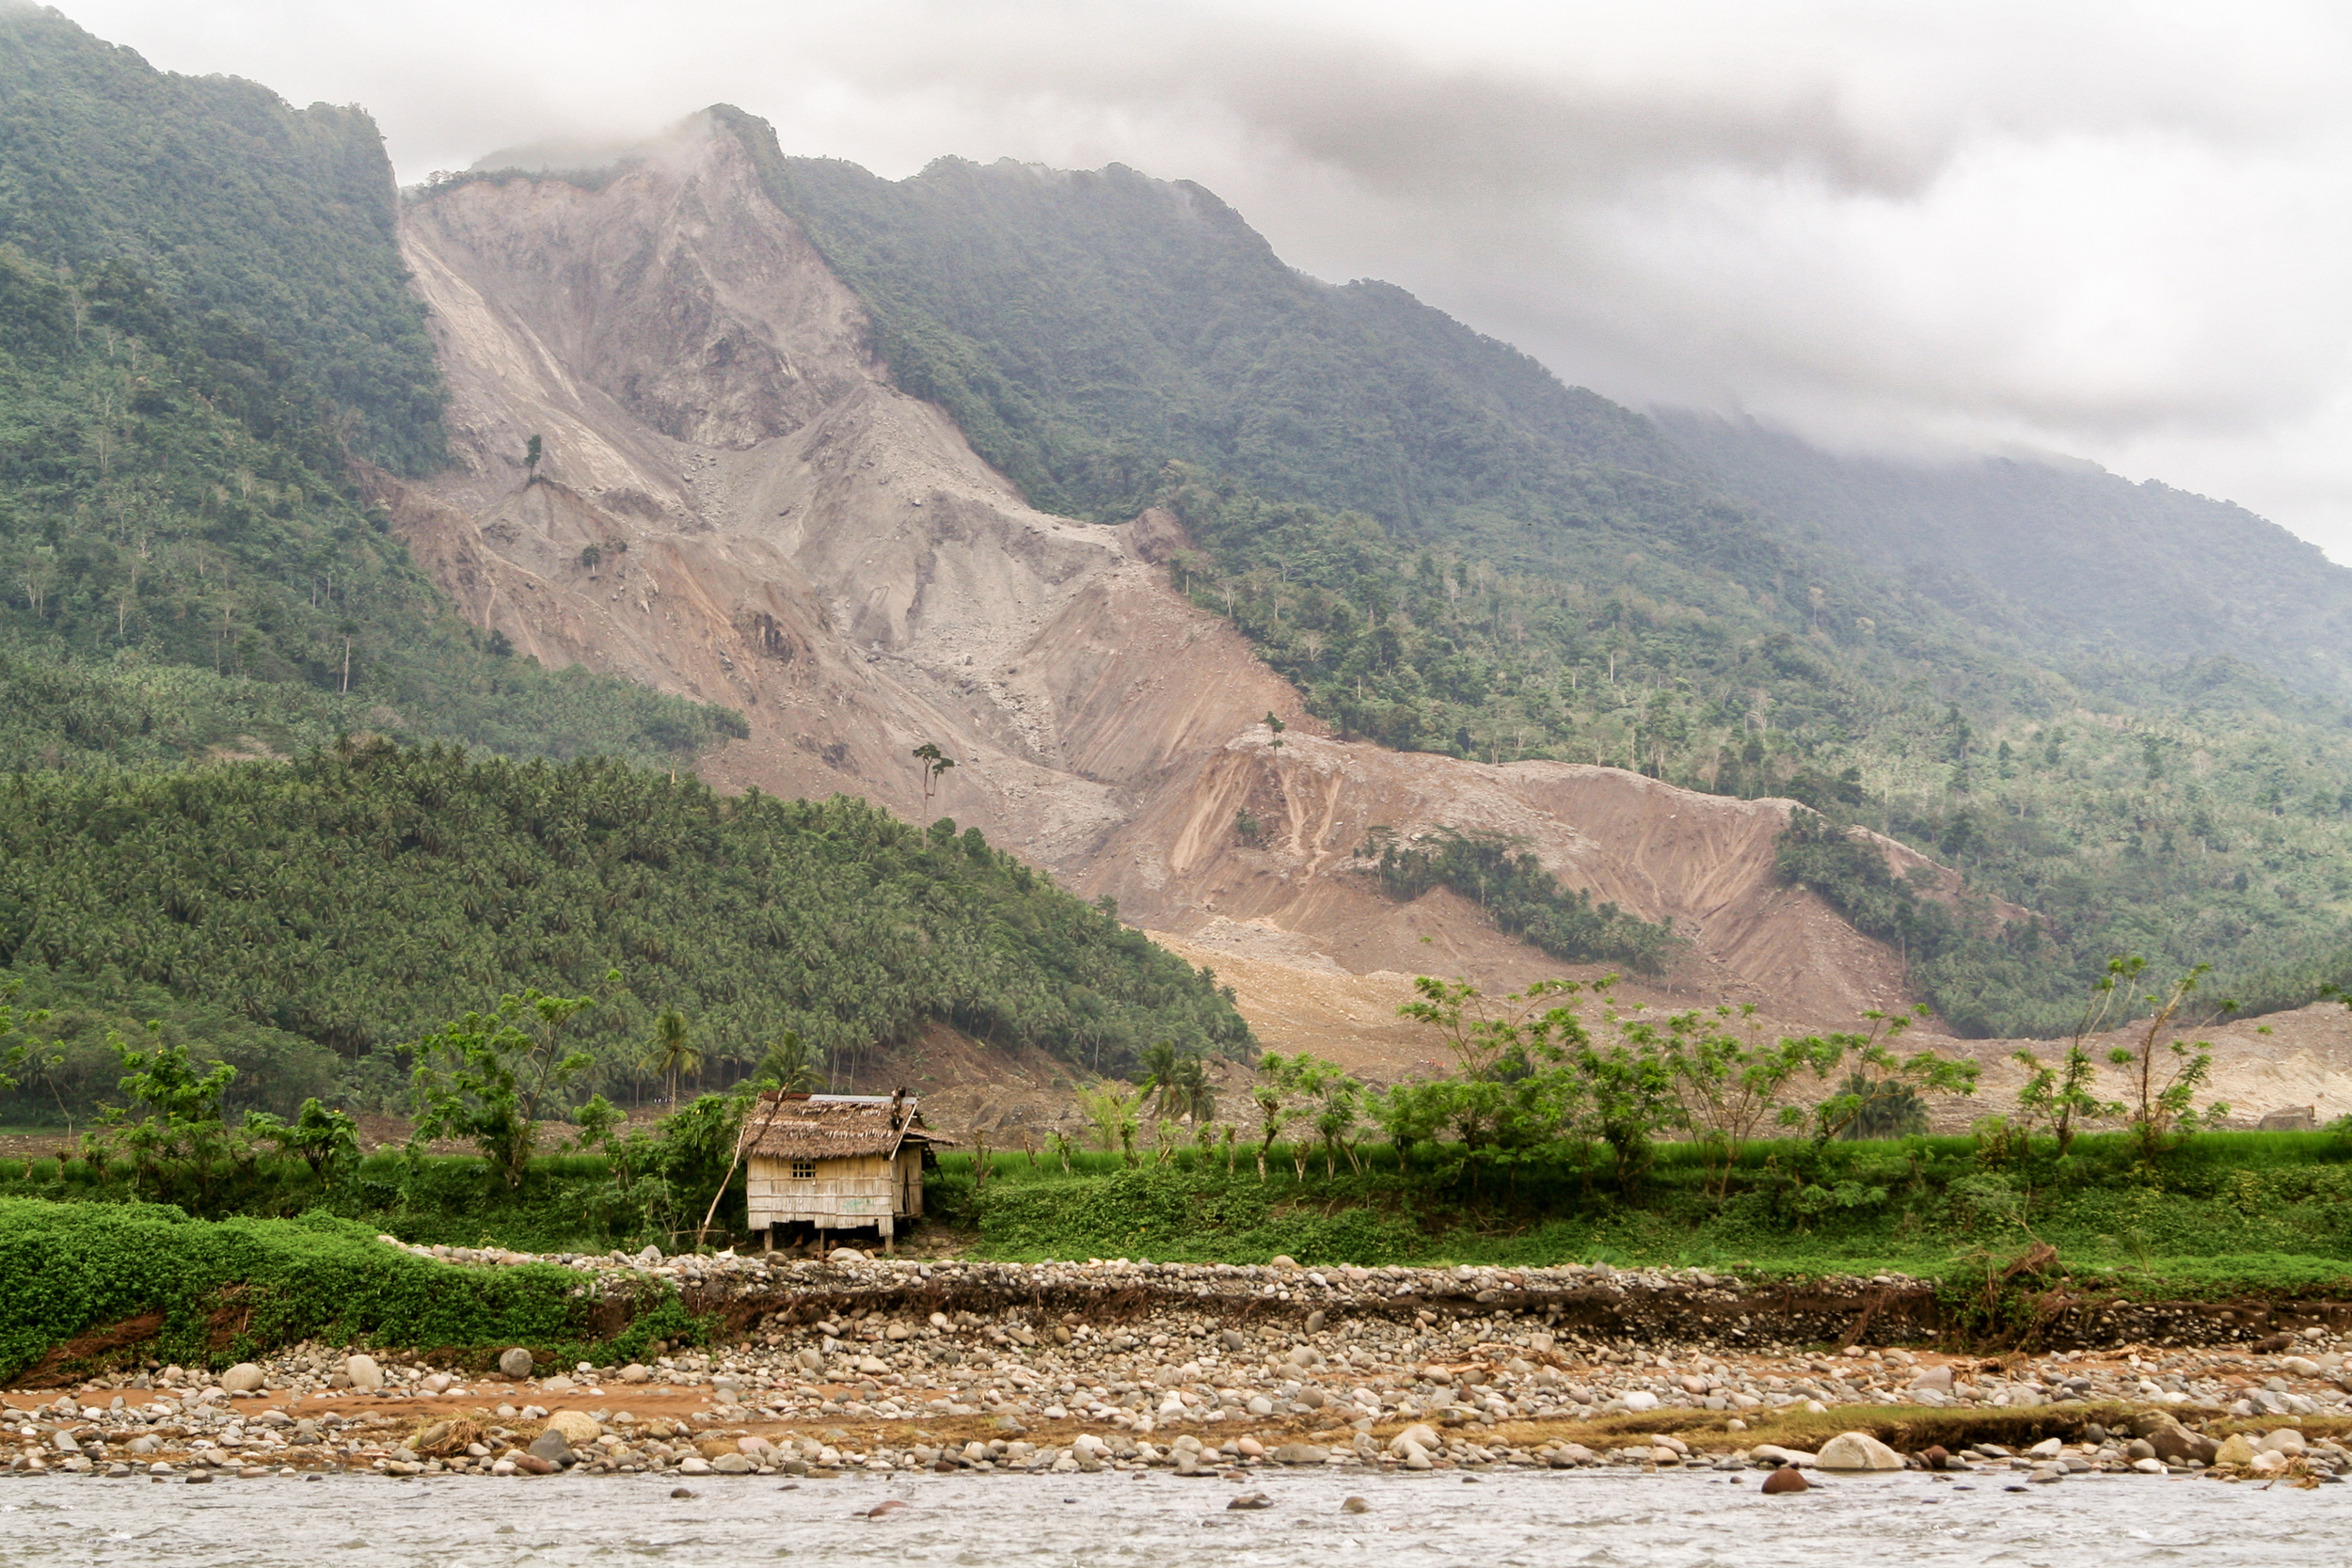 Landslide, on the Island of Leyte, Philippines, which destroyed the village of Guinsaugon.